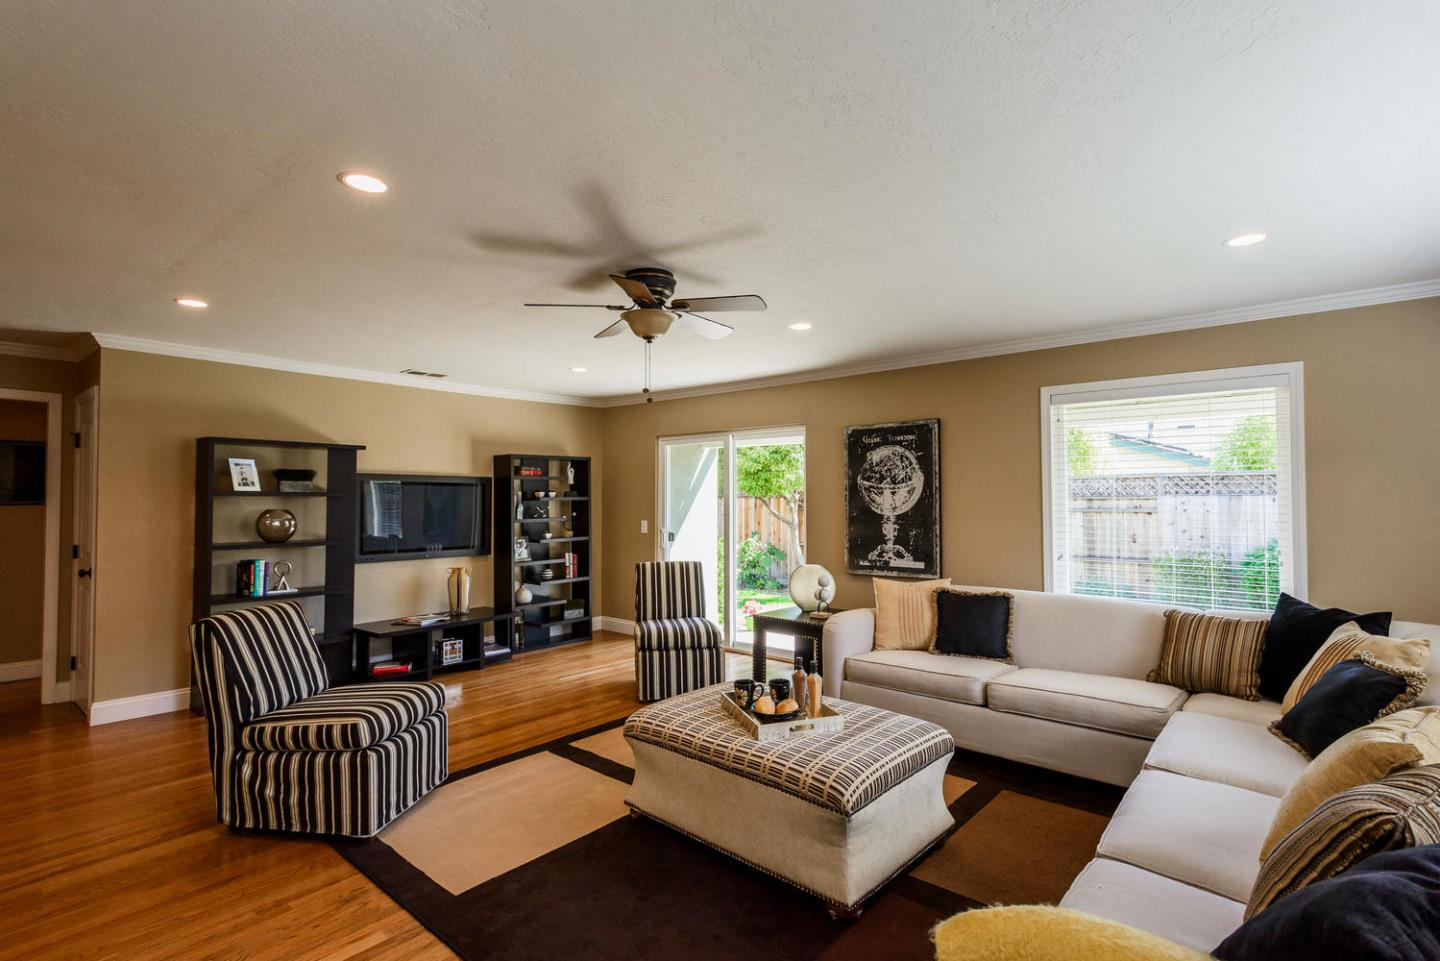 Additional photo for property listing at 2439 Goodwin Ave  REDWOOD CITY, CALIFORNIA 94061